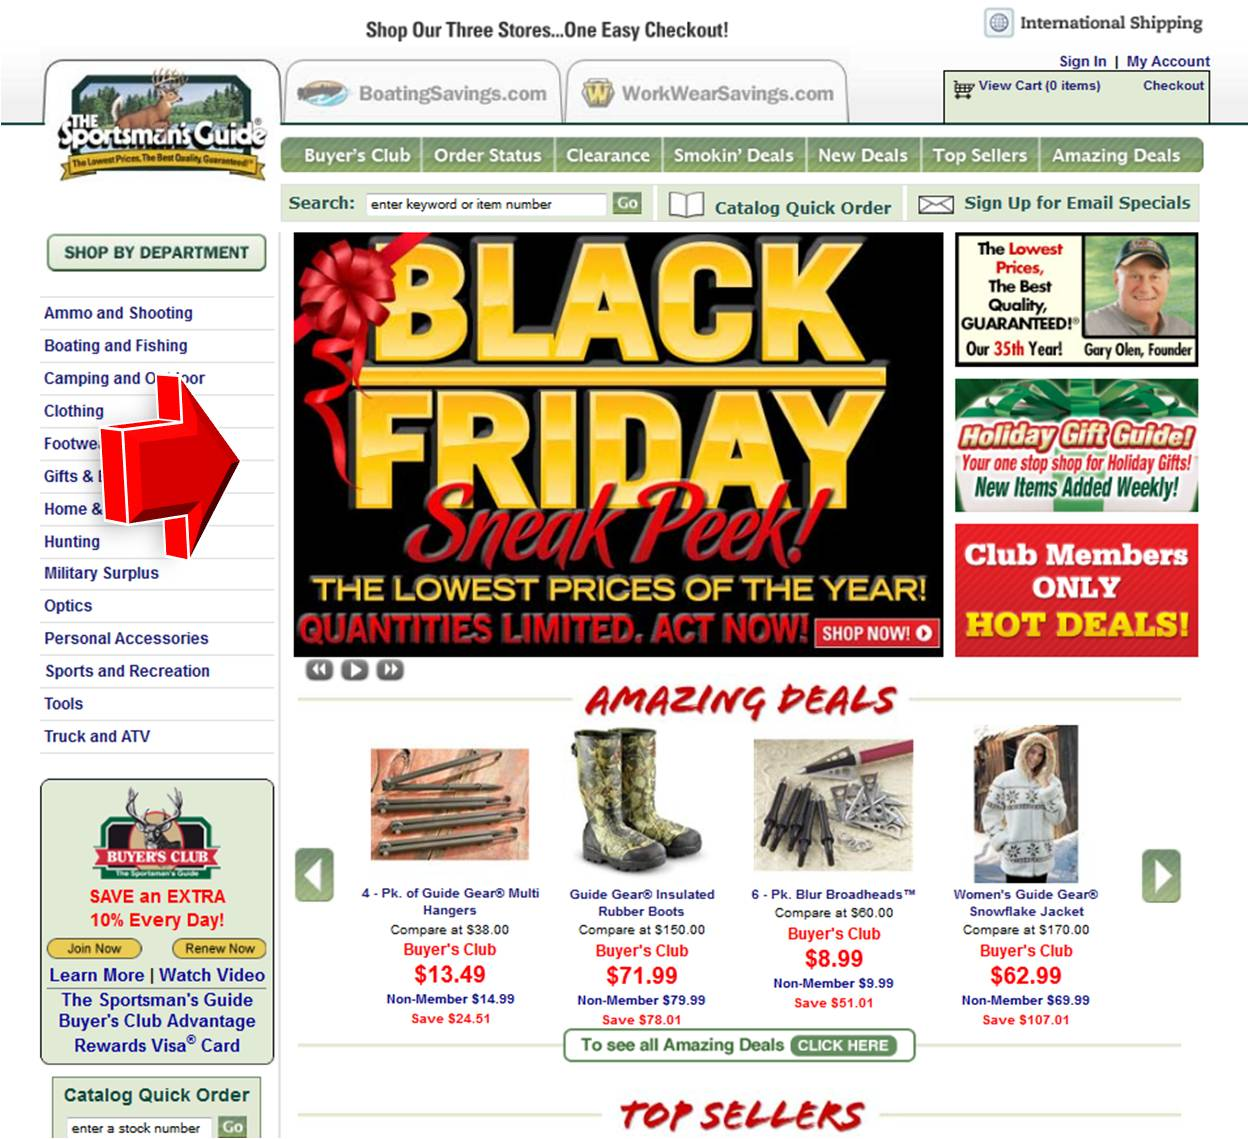 Sportsmans Guide Black Friday Sneak Peek | Coupon Code